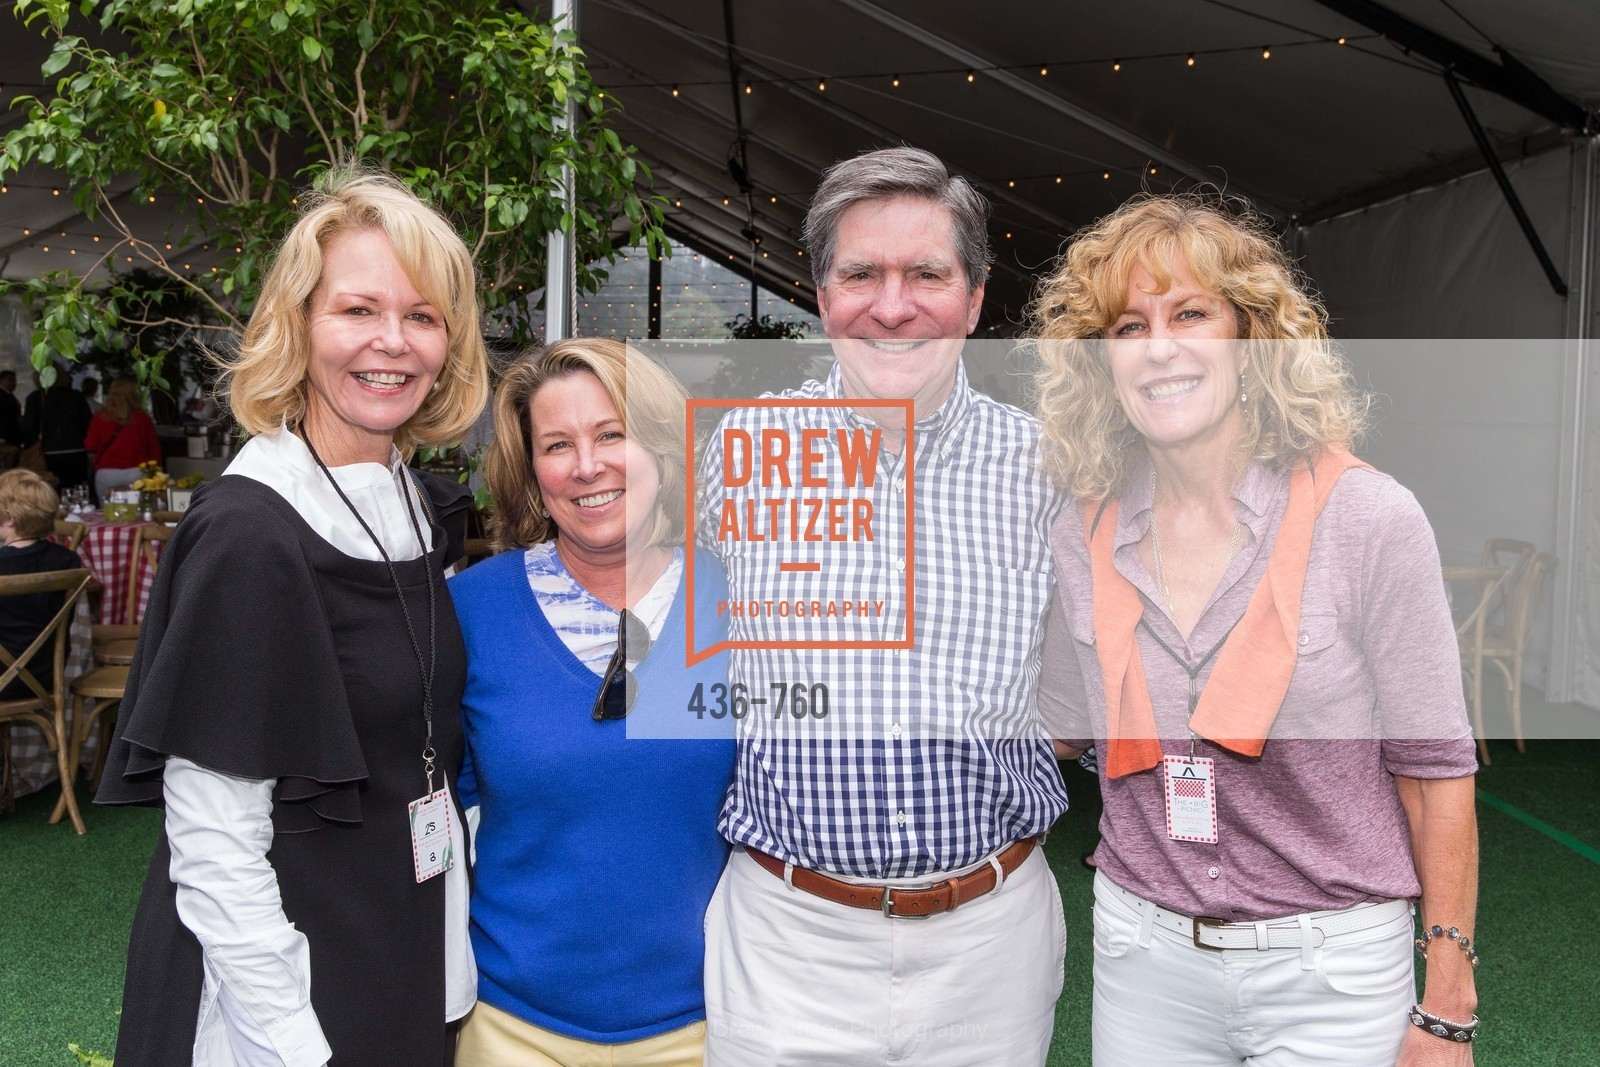 Nancy Suiter, Linda Walsh, Tom Walsh, Lisa Steiny, The Big Picnic! A Benefit & Concert for STERN GROVE FESTIVAL, US, June 14th, 2015,Drew Altizer, Drew Altizer Photography, full-service agency, private events, San Francisco photographer, photographer california